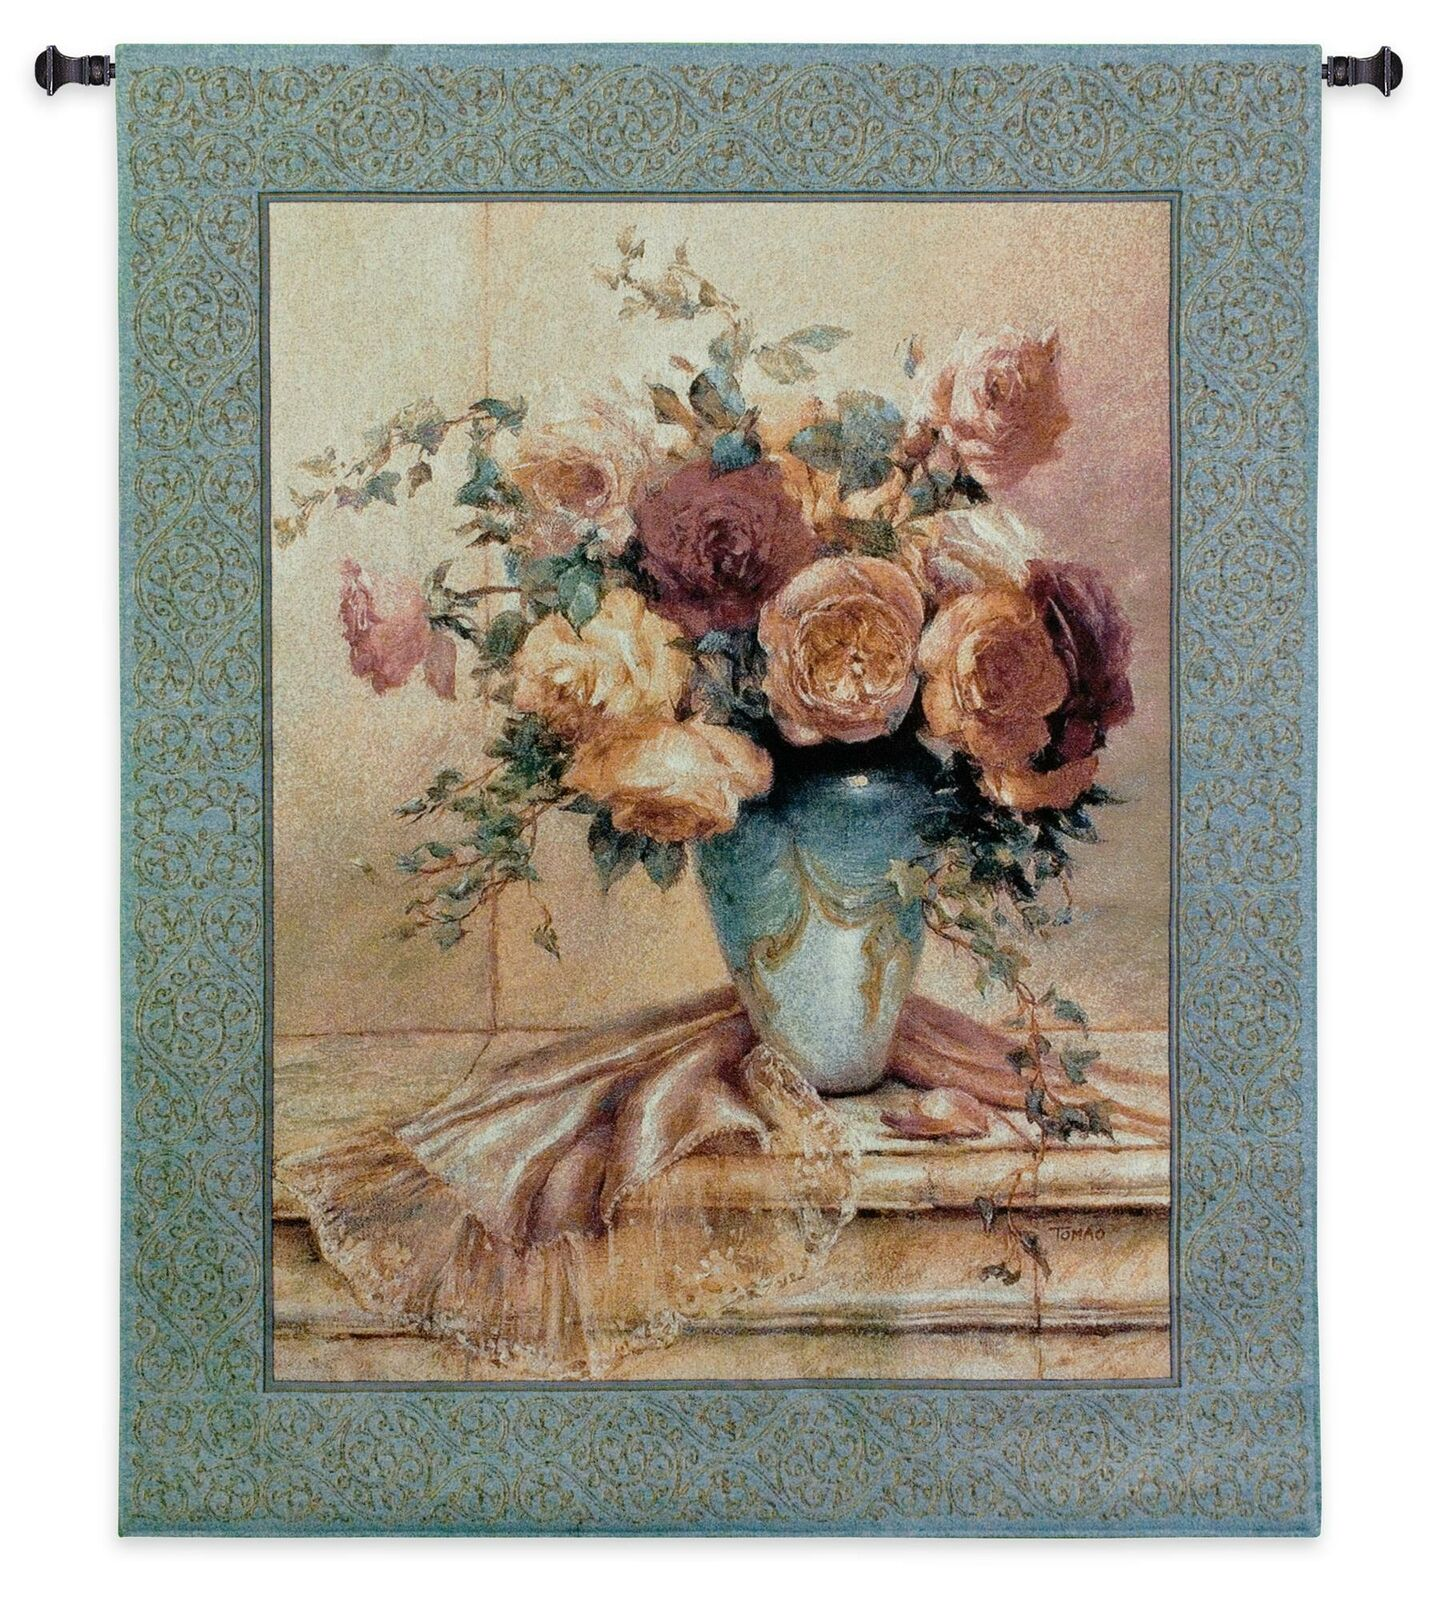 Jennie I  North American Made Woven Floral Tapestry Wand Hanging